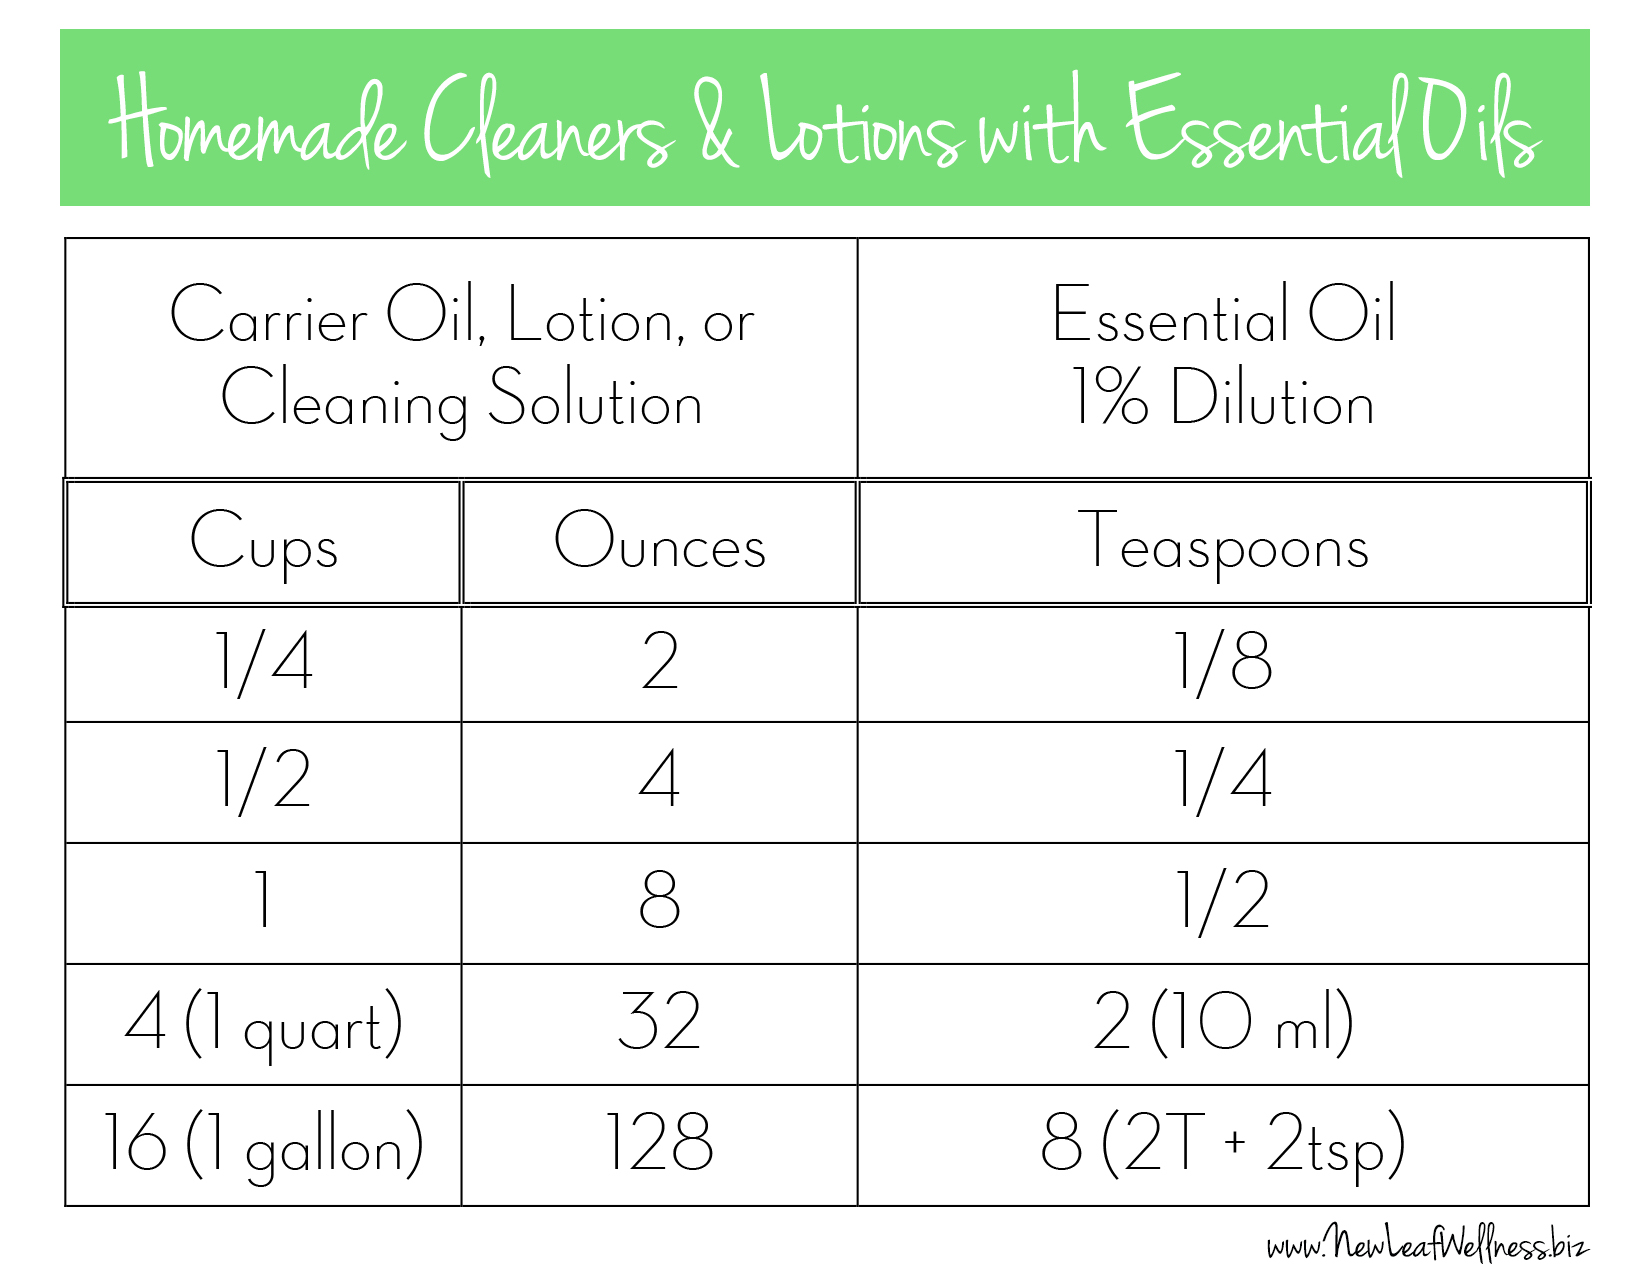 Homemade Cleaners and Lotions with Essential Oils - FREE PRINTABLE